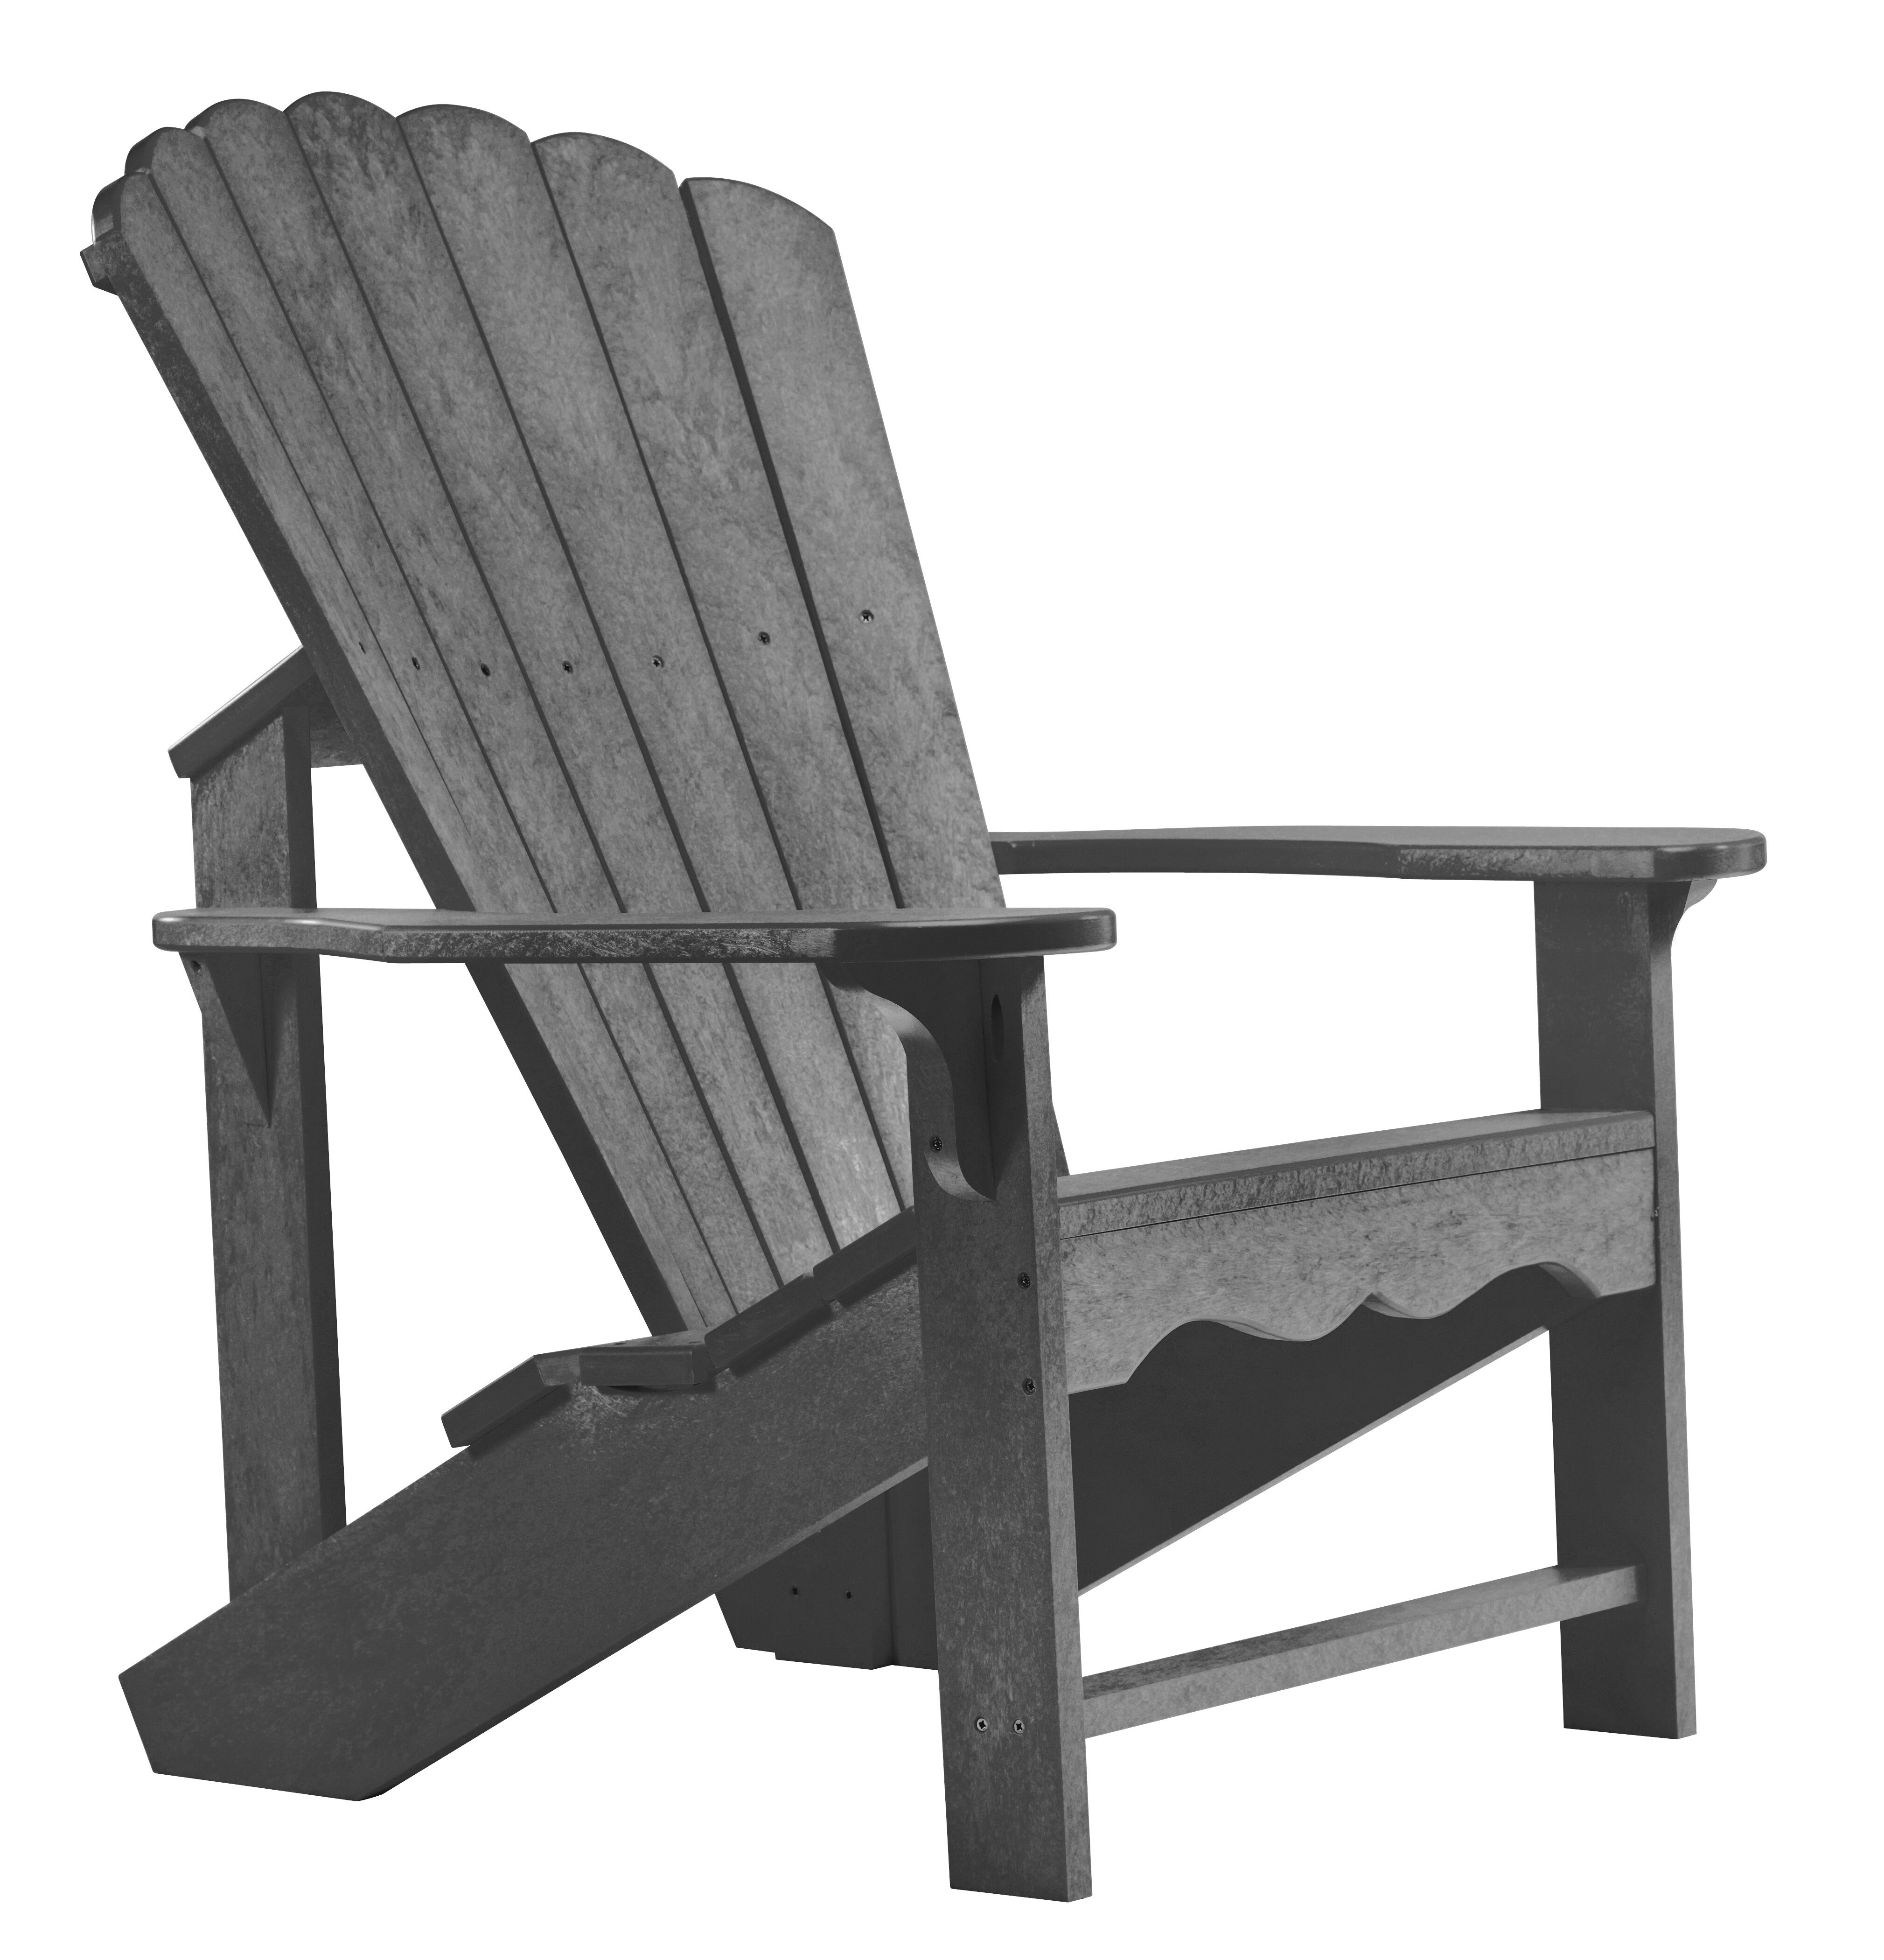 Beachcrest Home Zander Plastic Adirondack Chair U0026 Reviews | Wayfair